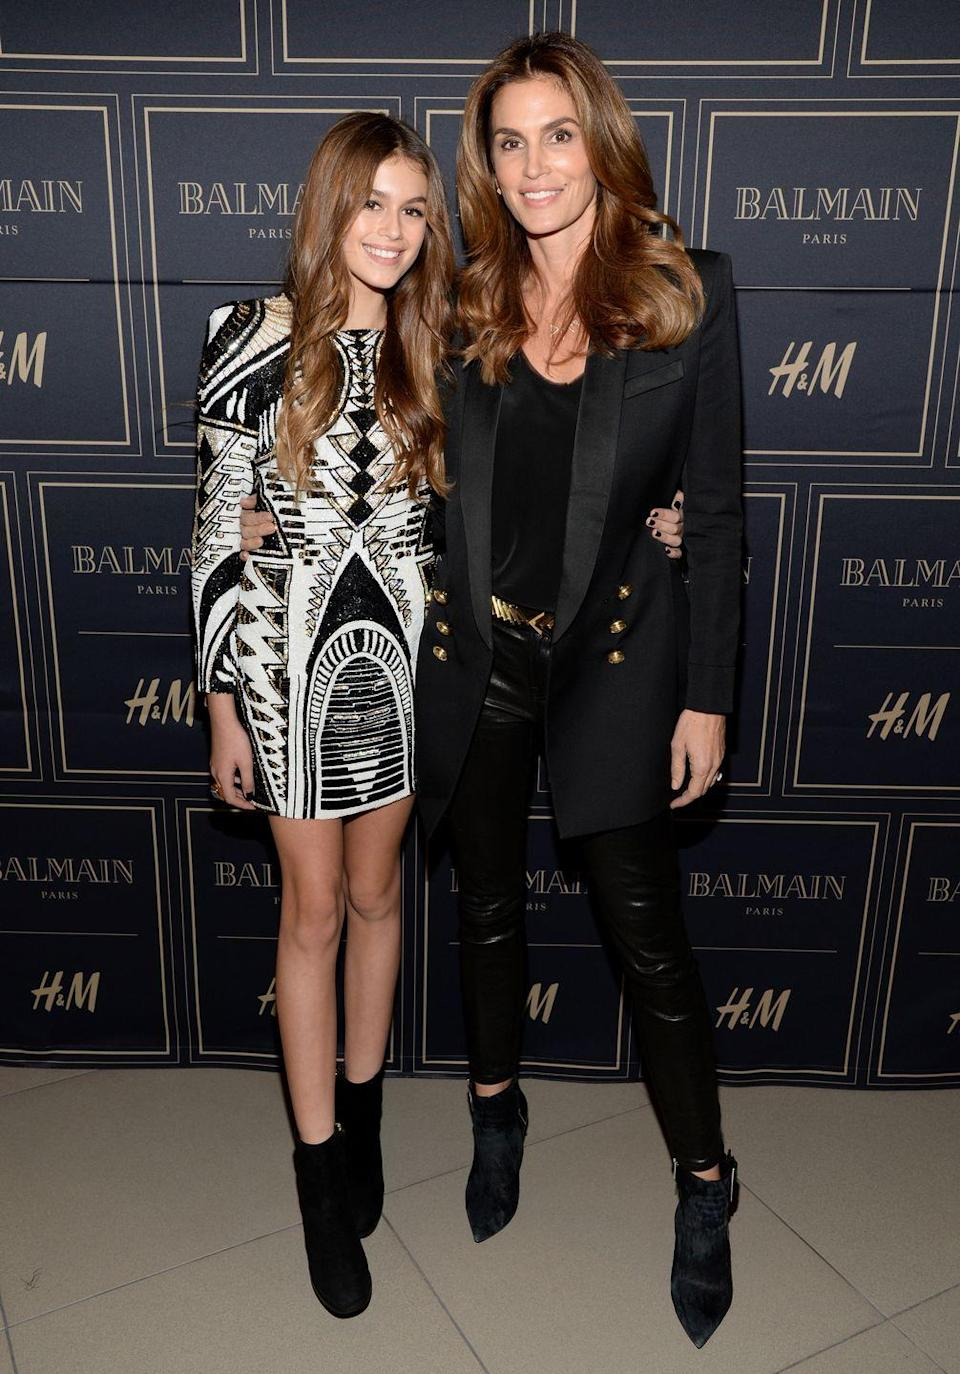 <p>Like mother, like daughter. The Crawford women wore Balmain to the Balmain x H&M Los Angeles VIP Pre-Launch. </p>